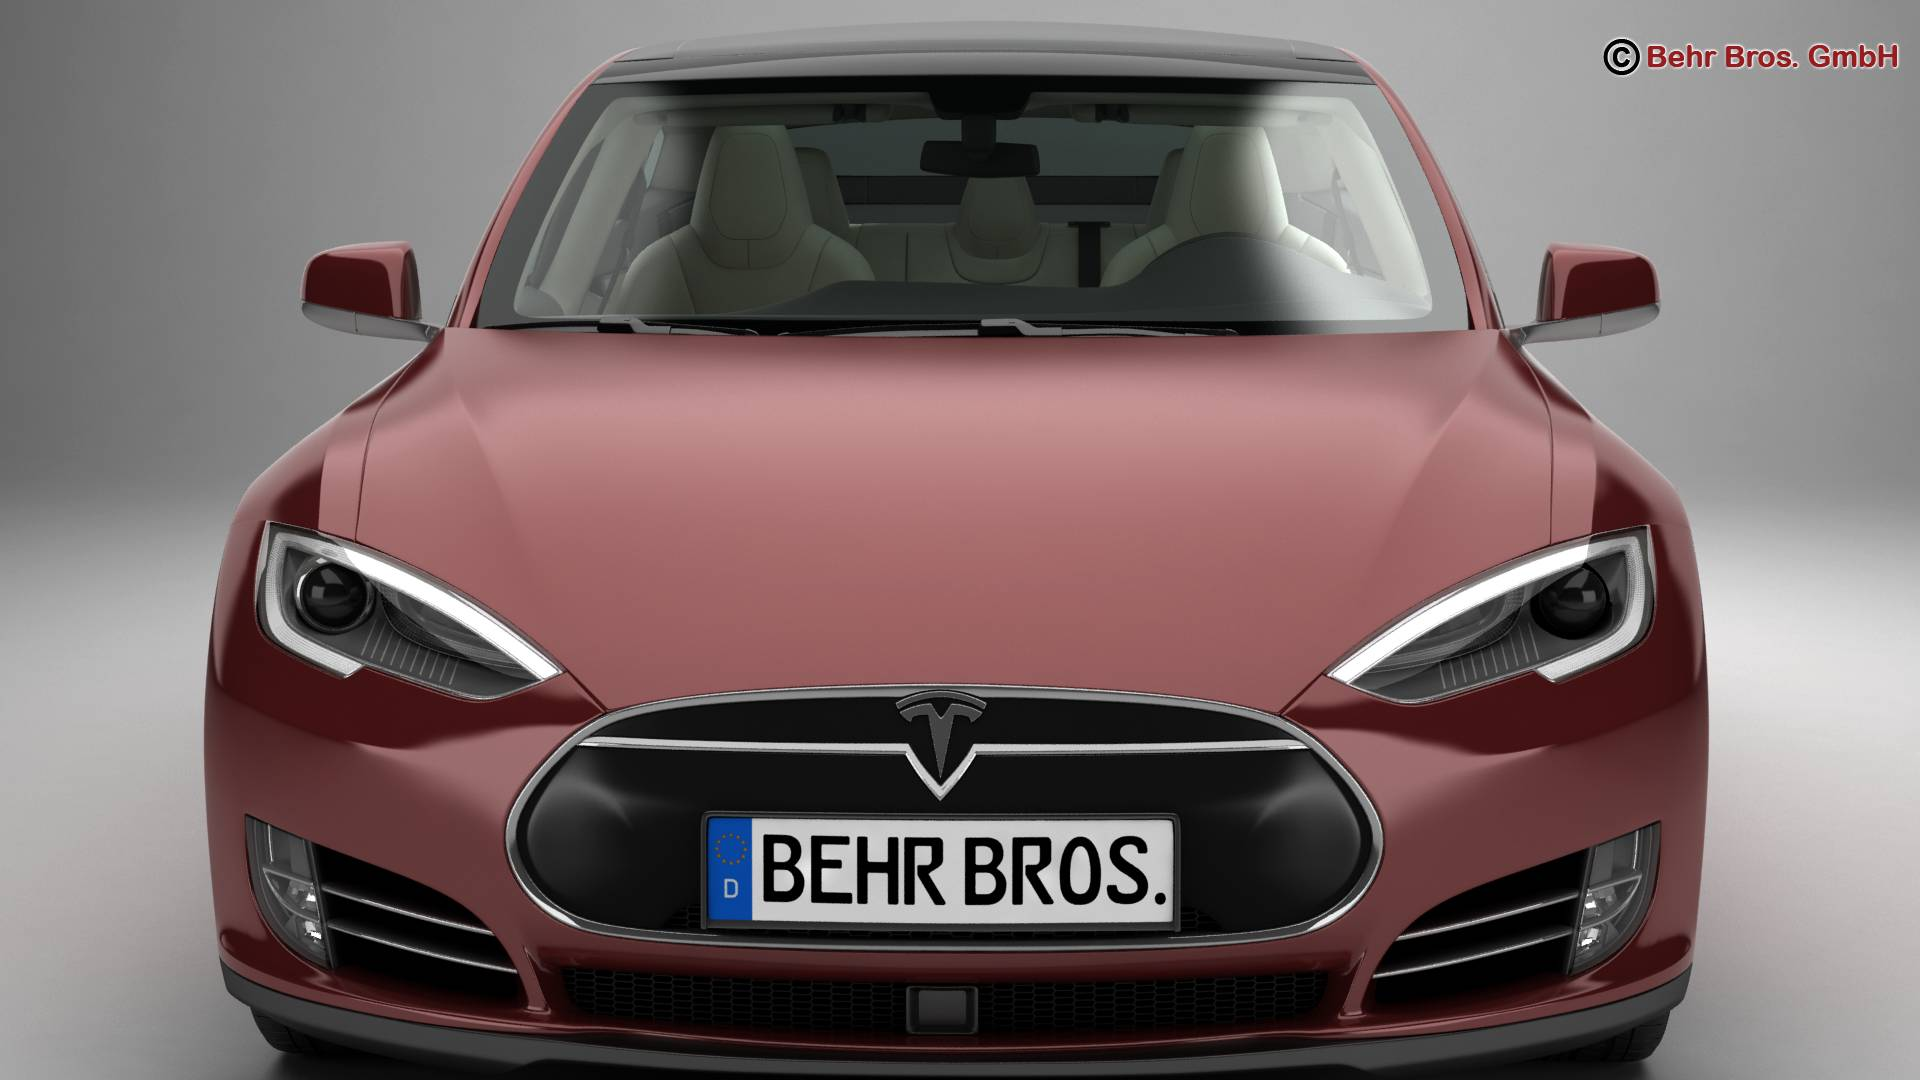 tesla model s 2015 3d model 3ds max fbx c4d lwo ma mb obj 217611